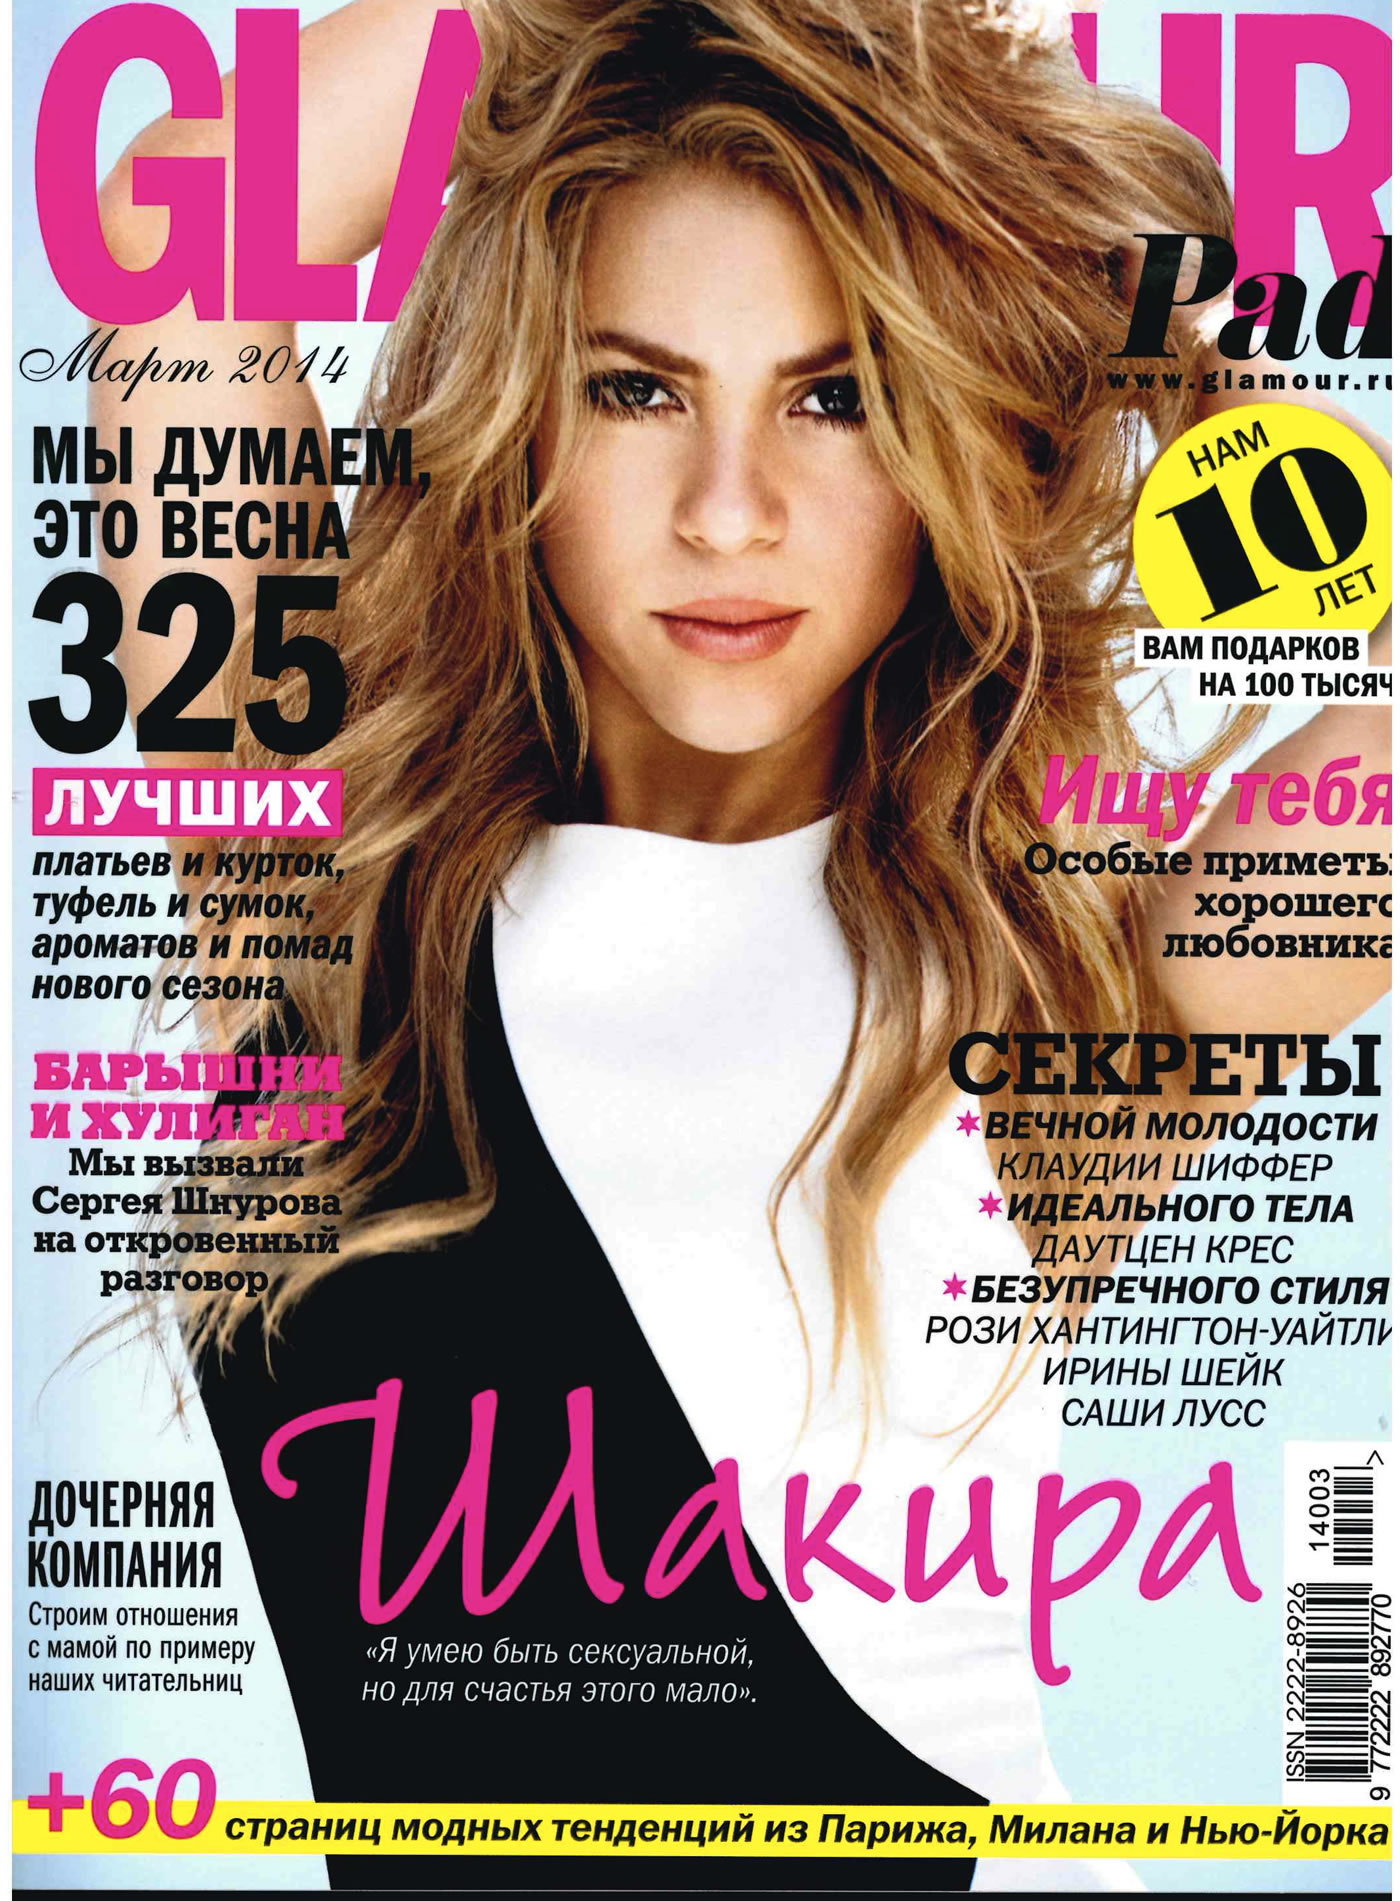 Eutopie 6 Glamour Russia March 2014